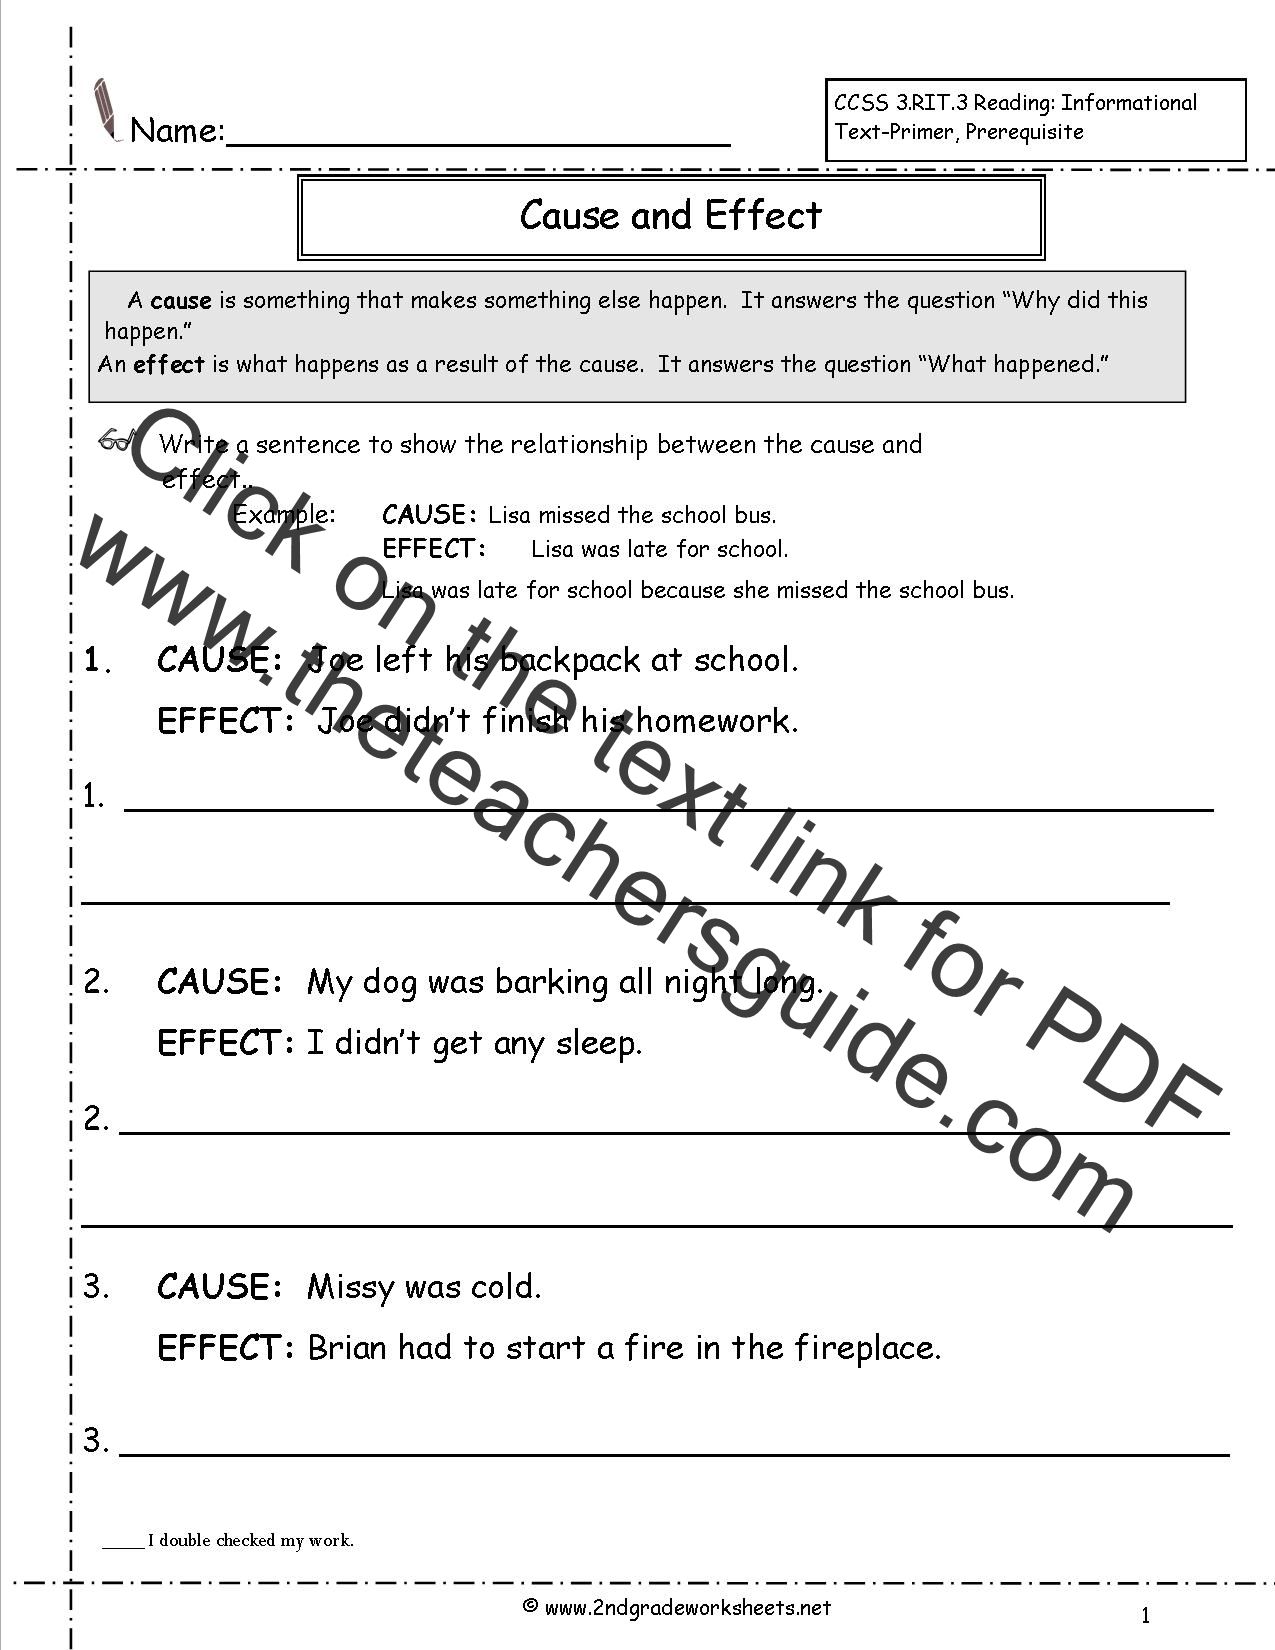 worksheet Informational Text Worksheets reading worksheeets worksheets